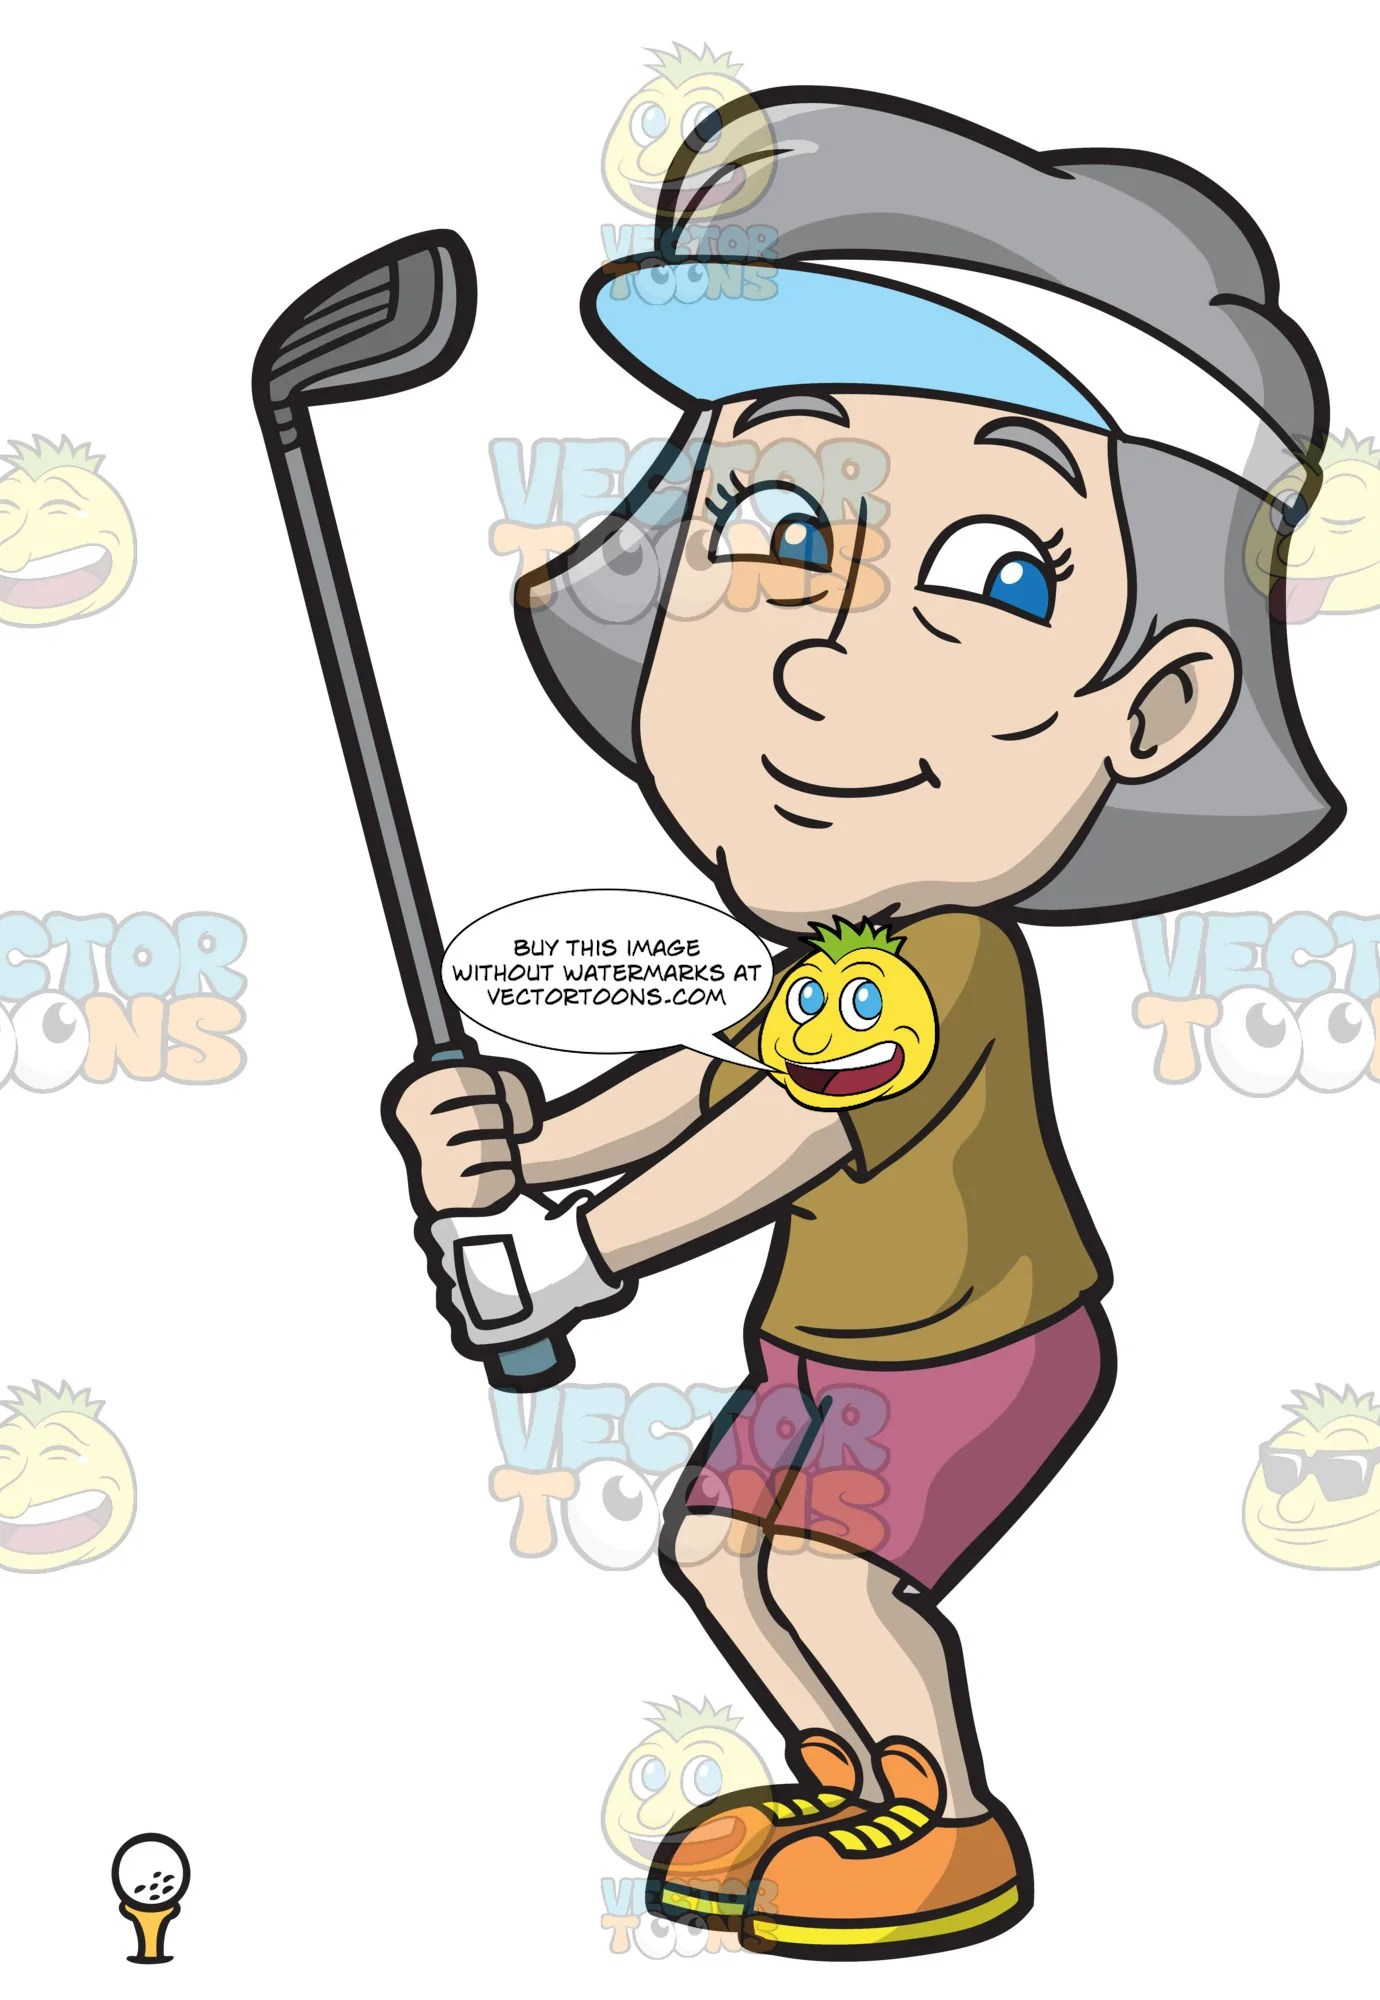 small resolution of a fun mature woman enjoying a game of golf clipart cartoons by vectortoons